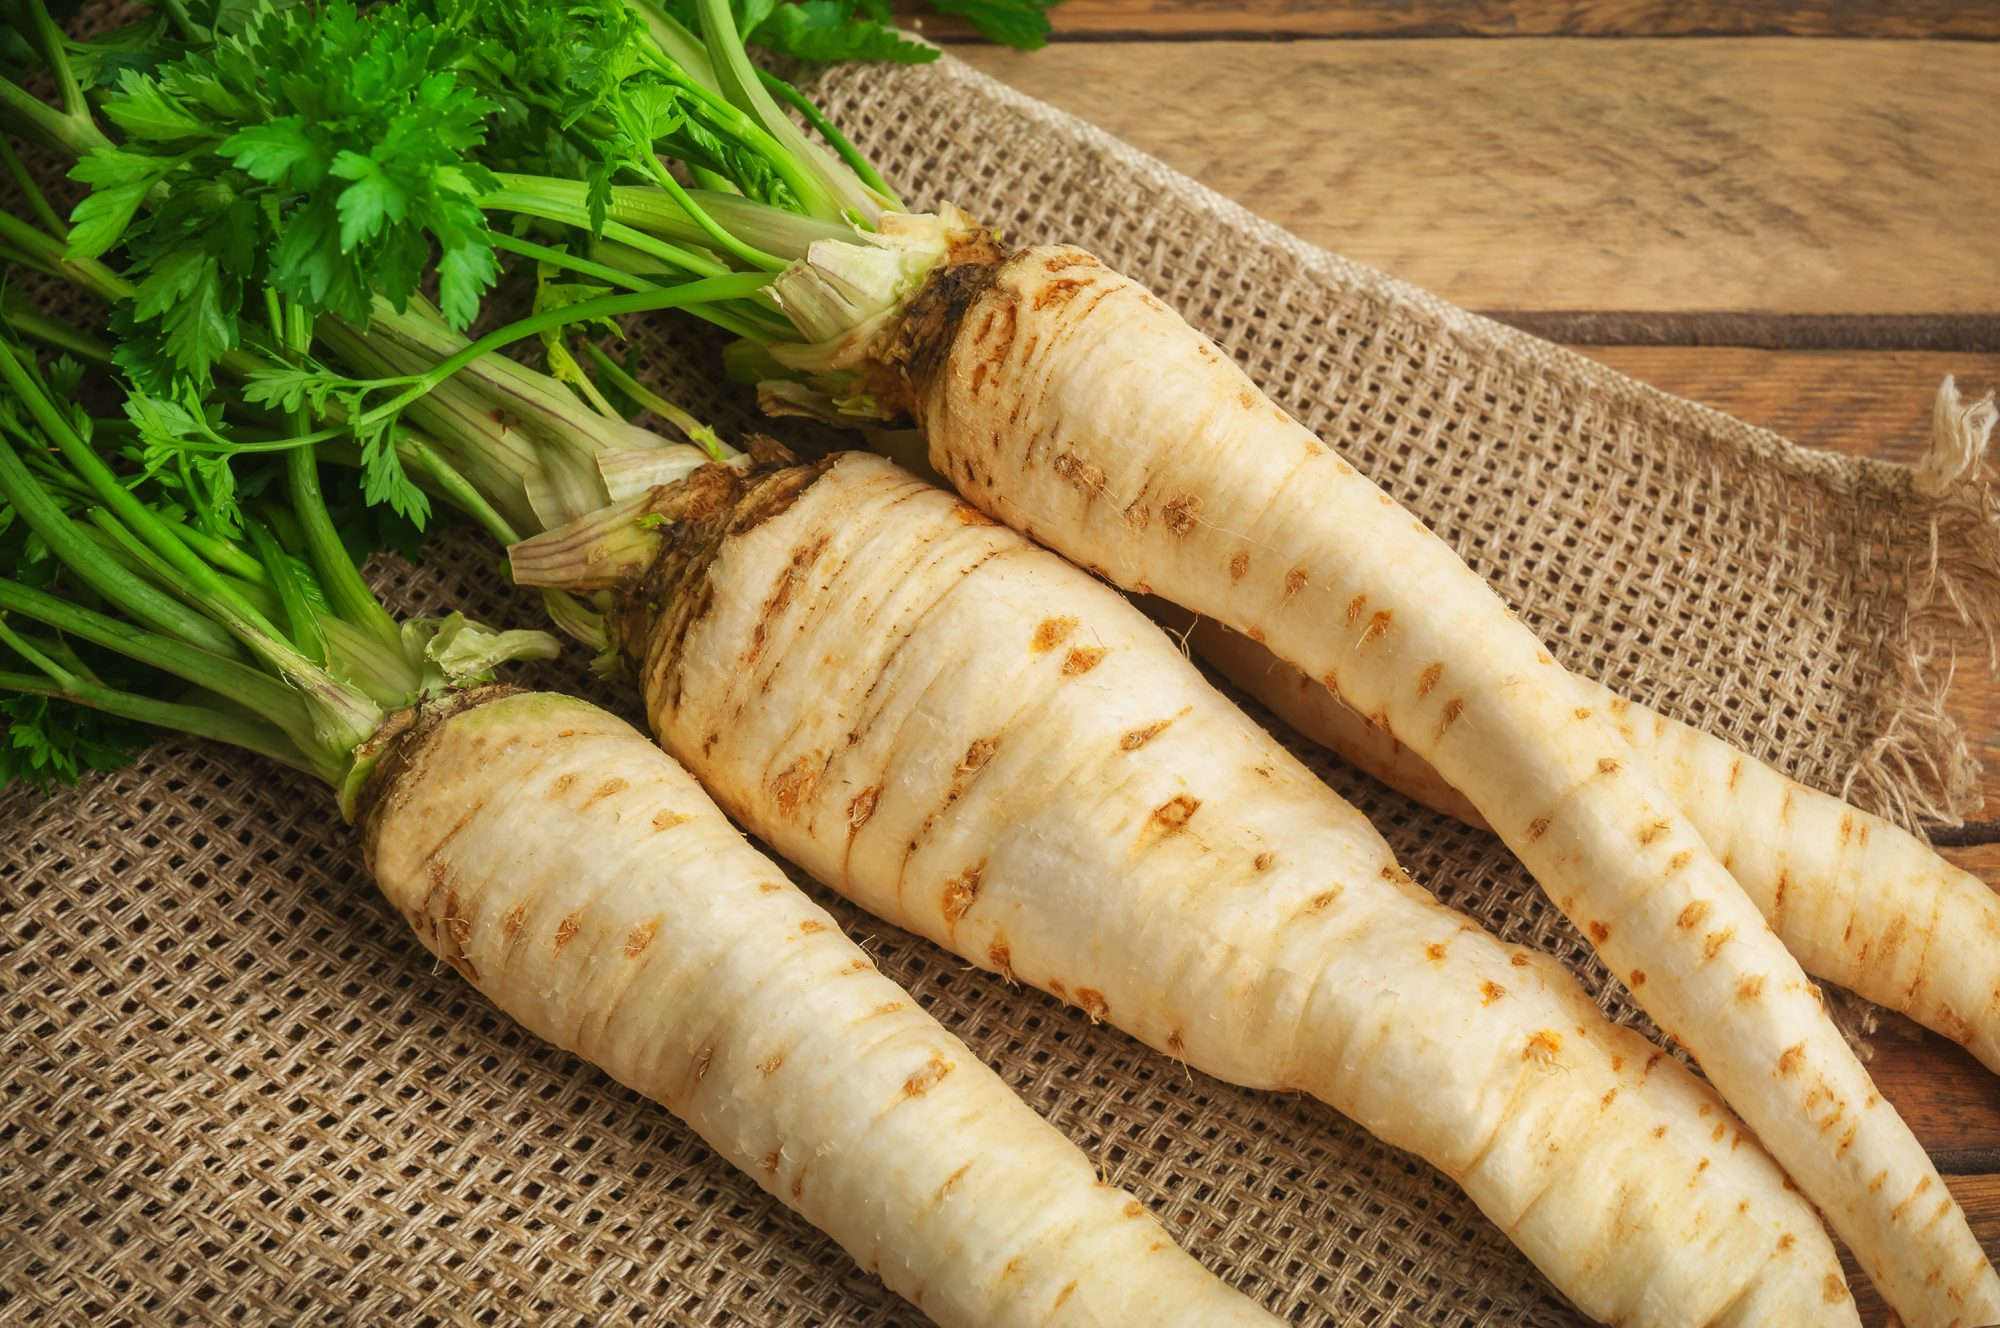 Parsnips by Getty